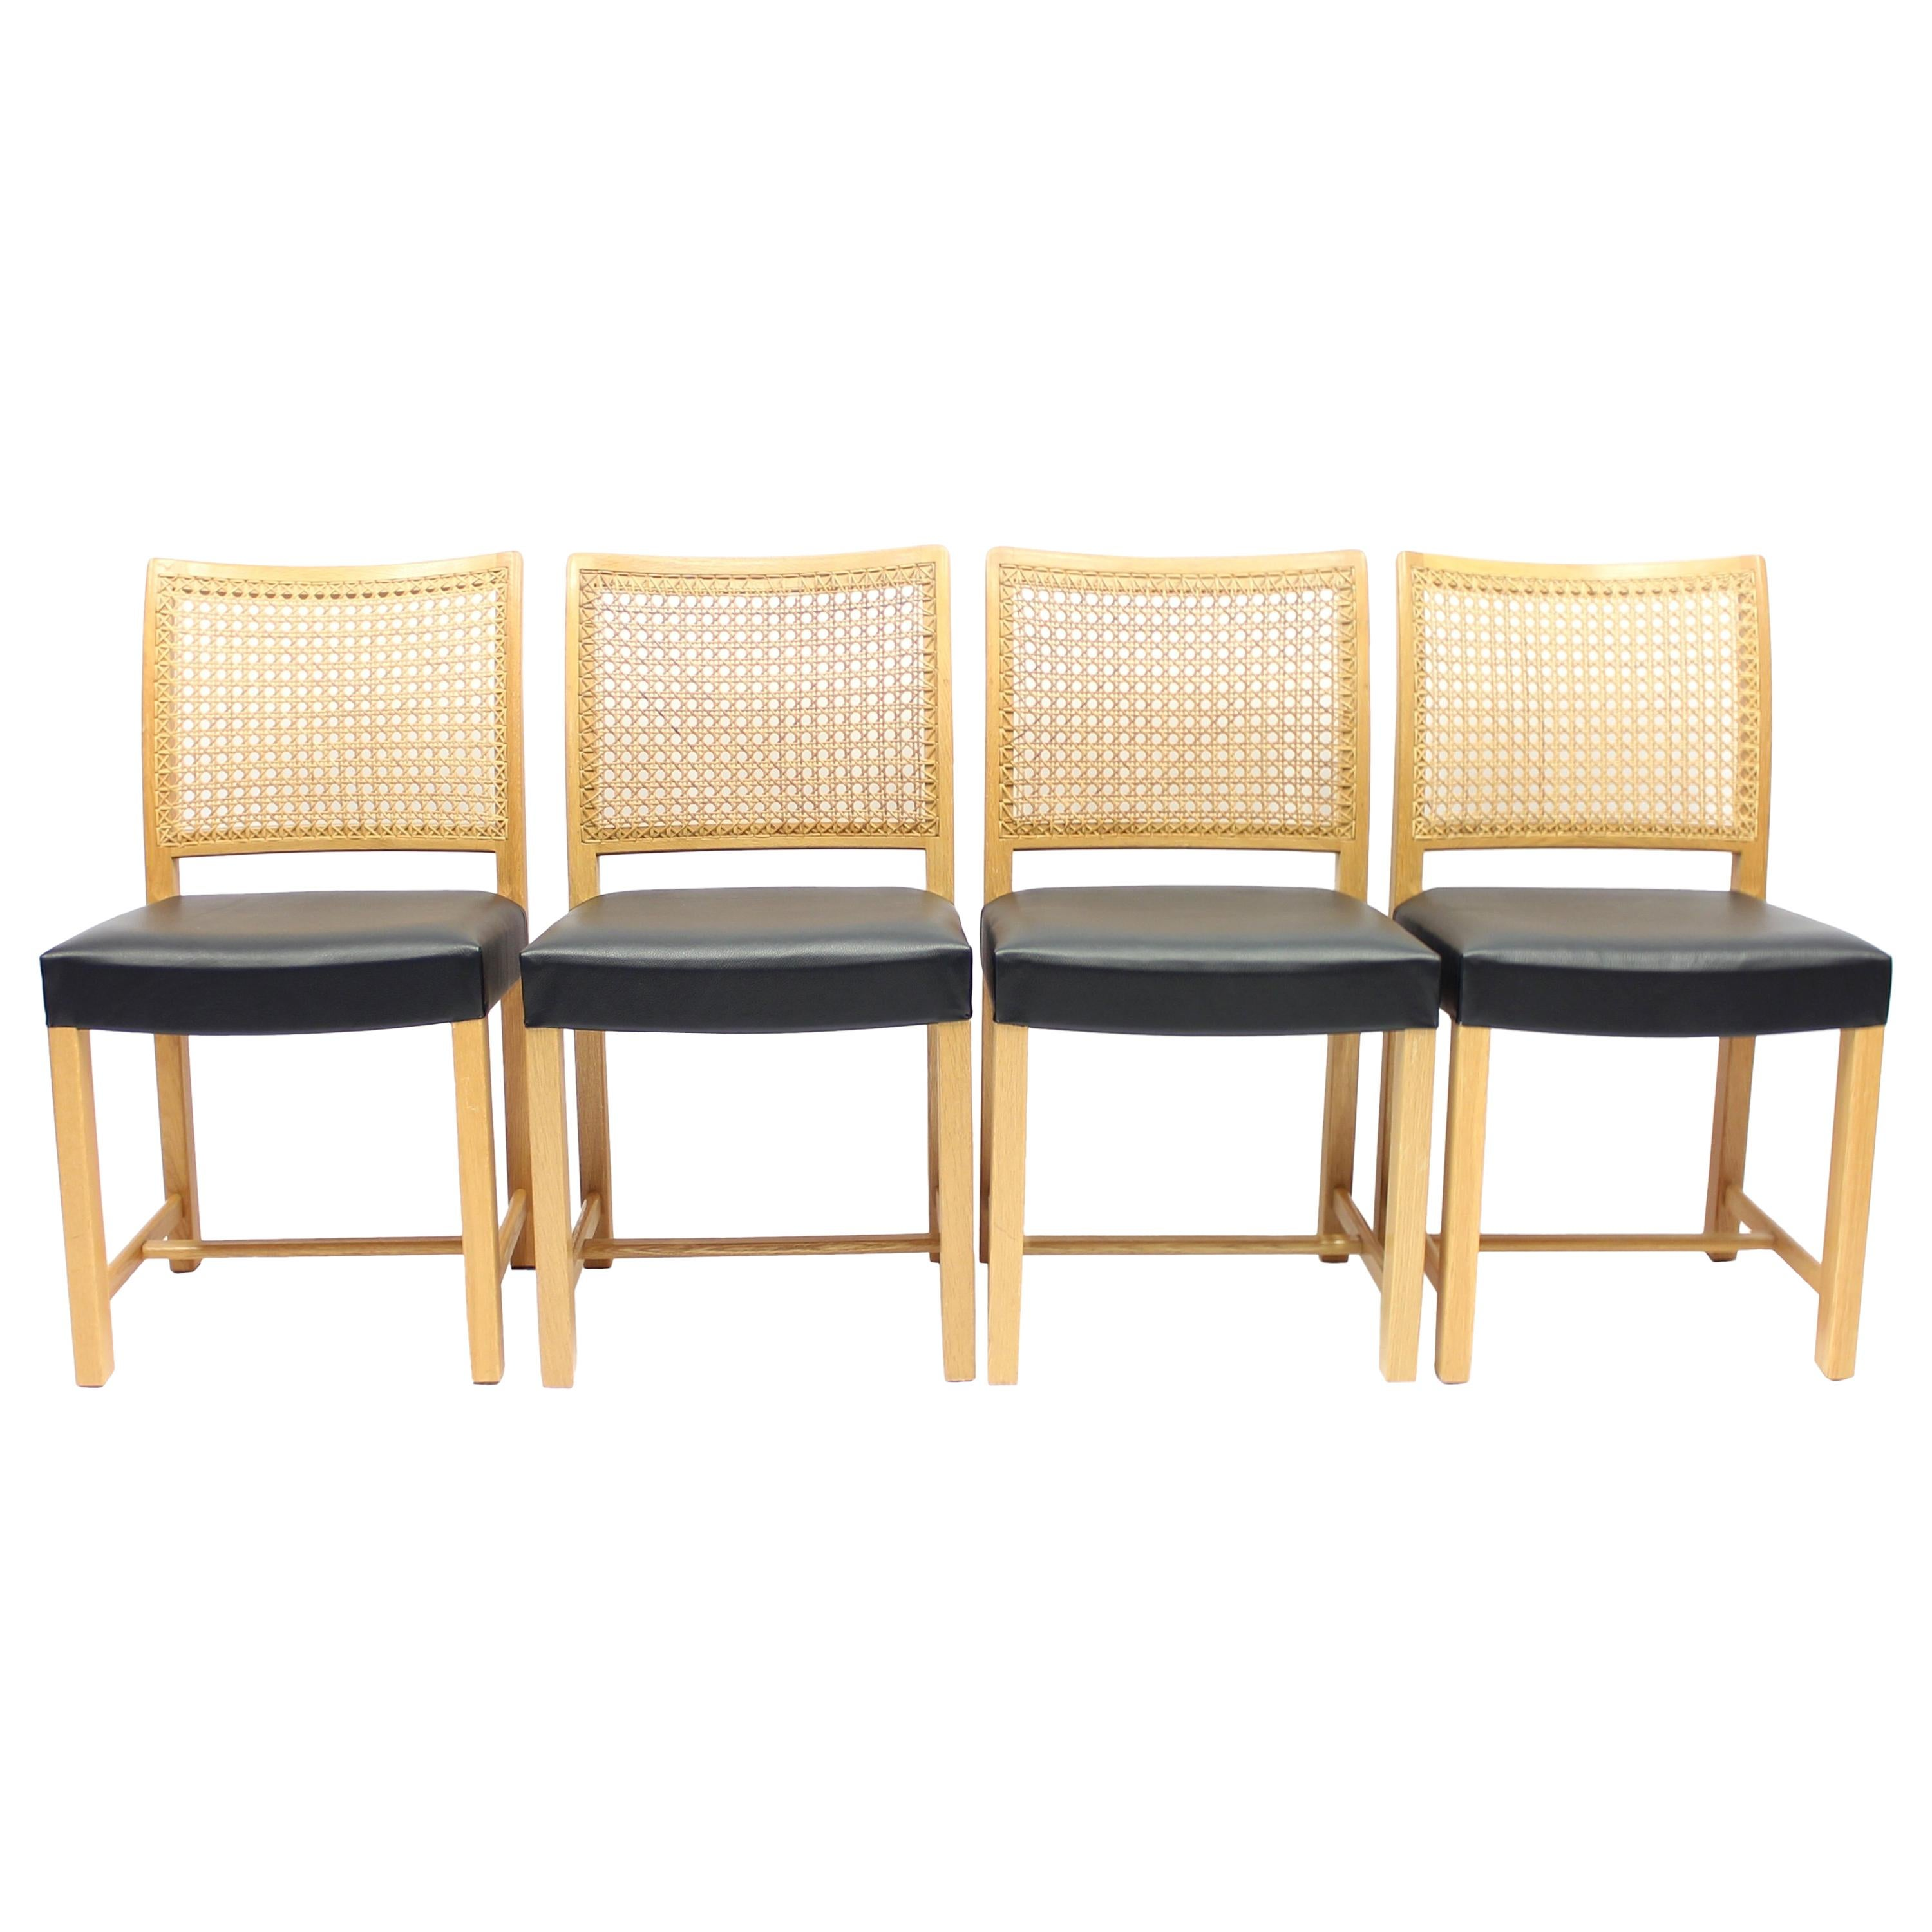 Dining Chairs by Carl Gustaf Hiort Af Ornäs for Mikko Nupponen, 1950s, Set of 4